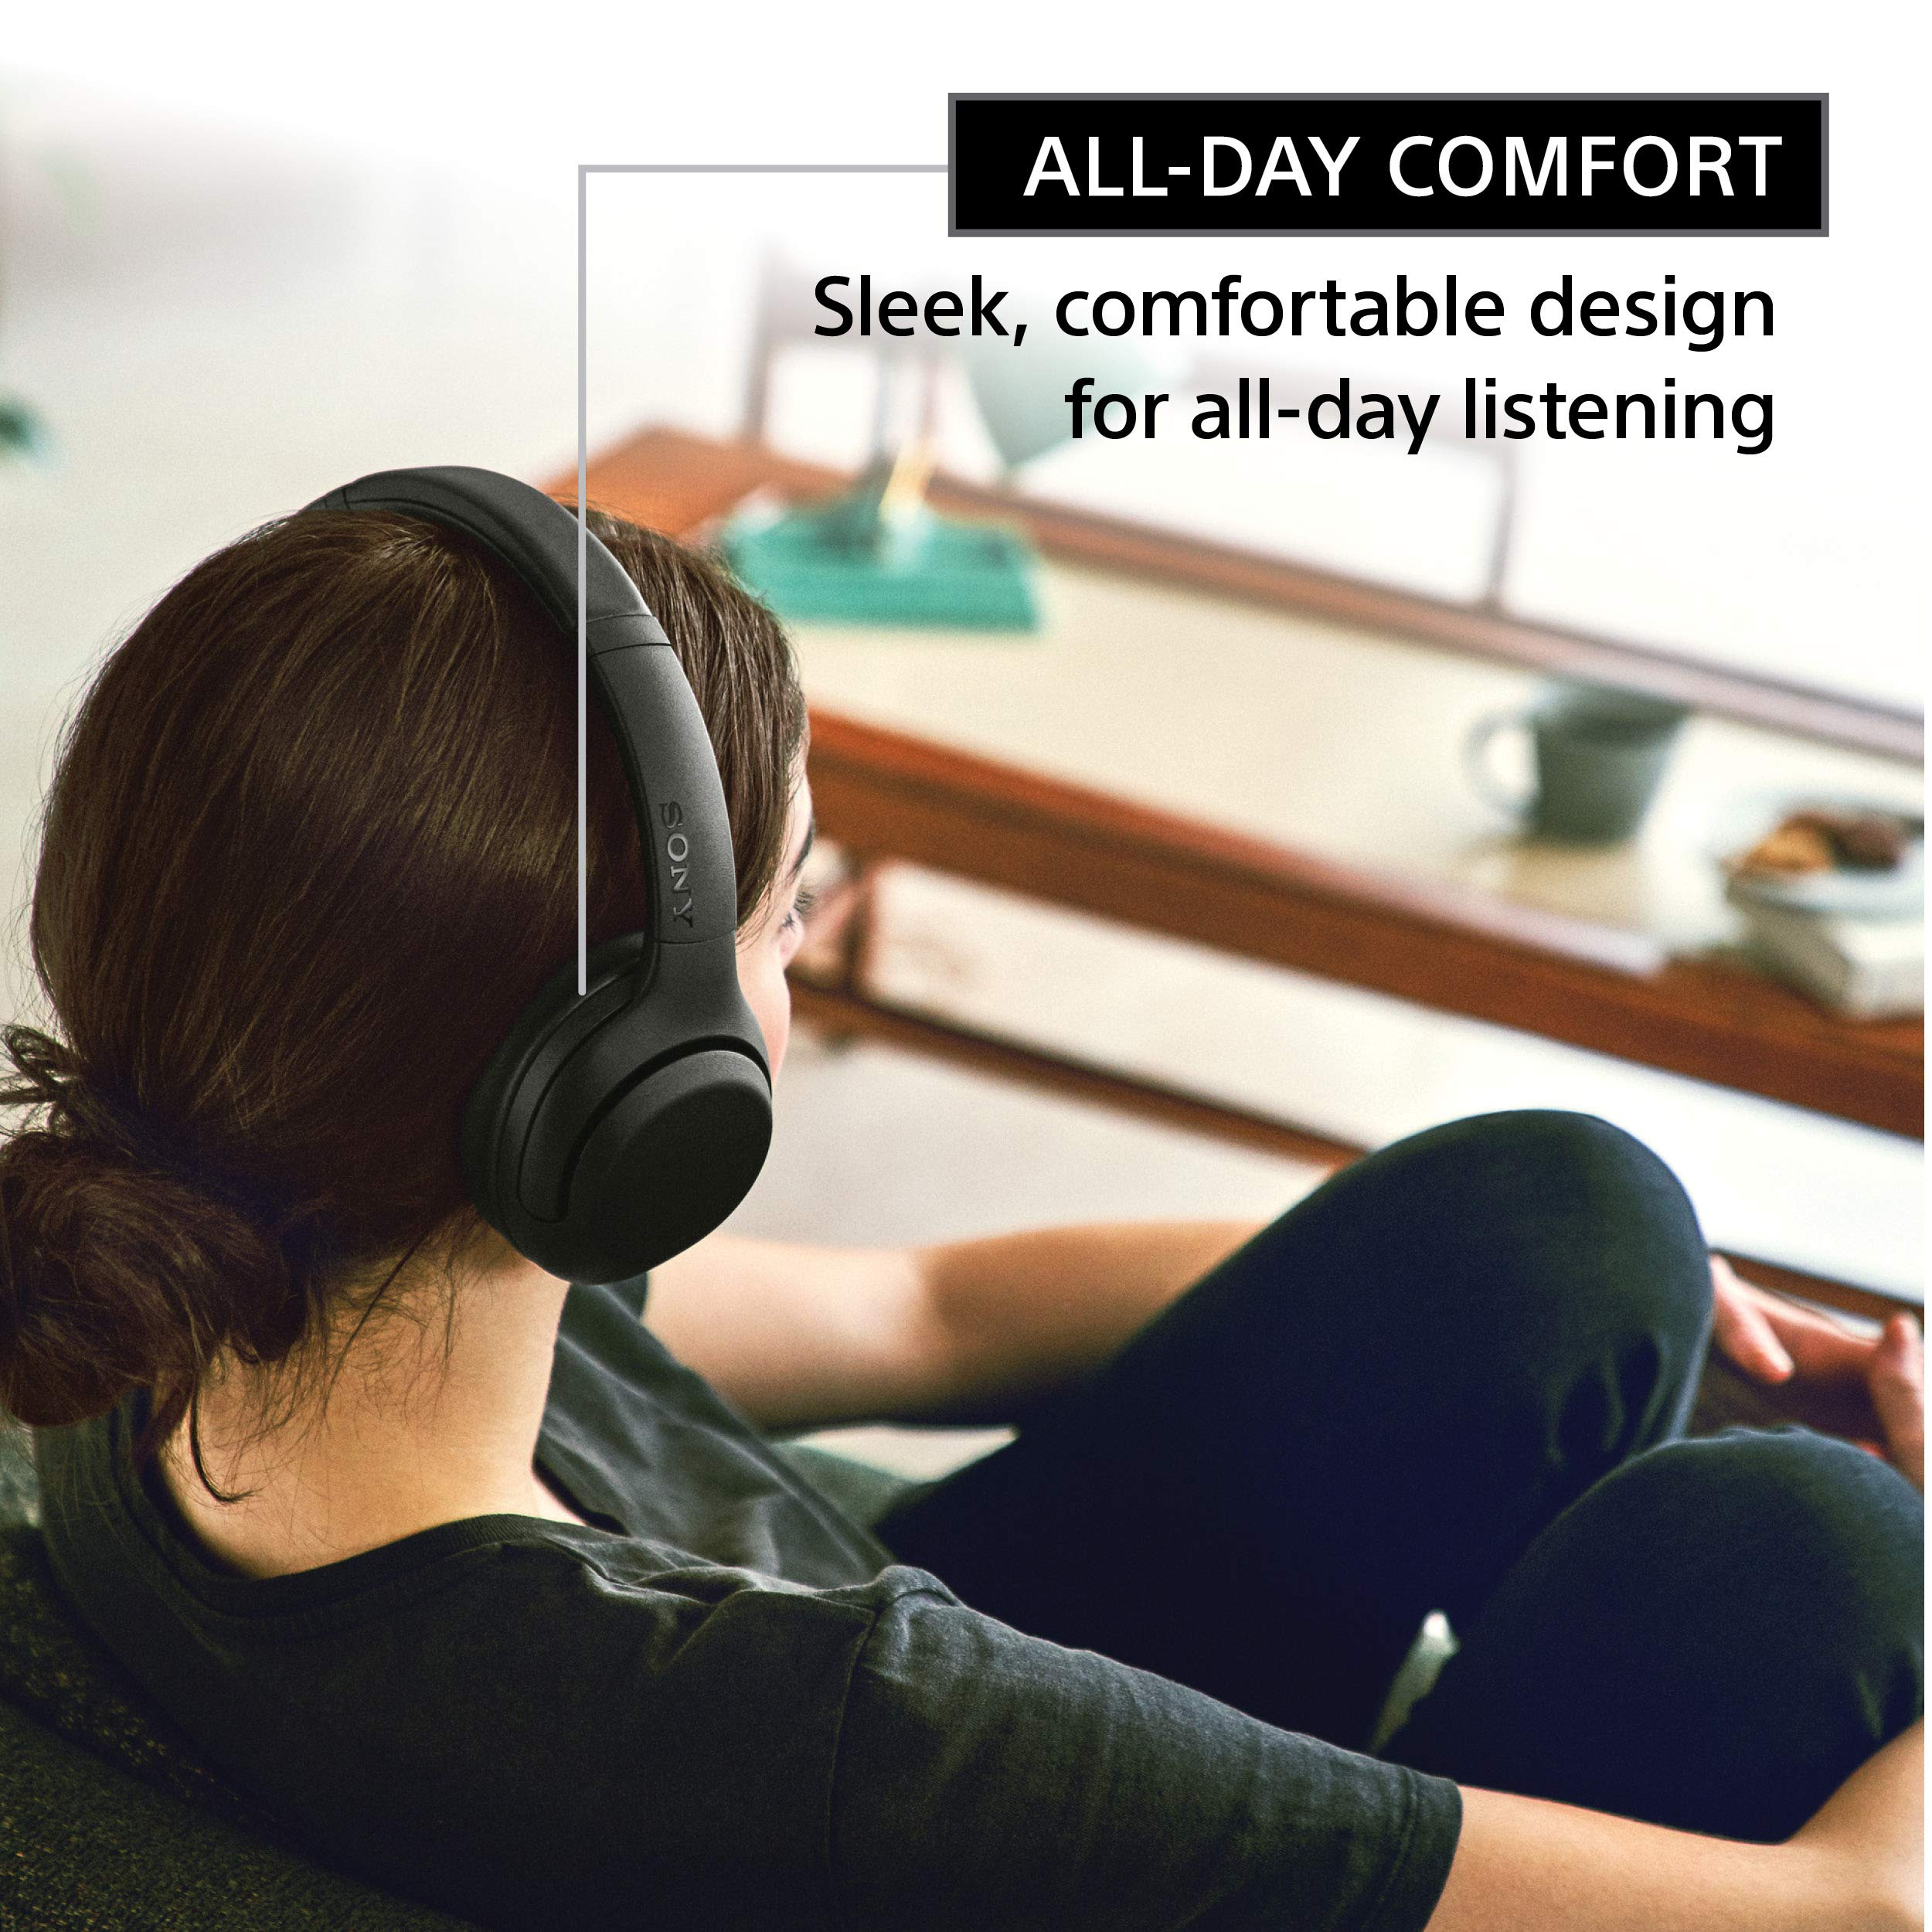 Sony WHXB900N Noise Cancelling Headphones, Wireless Bluetooth Over the Ear Headset with Mic for Phone-Call and Alexa Voice Control- Black (WH-XB900N/B)